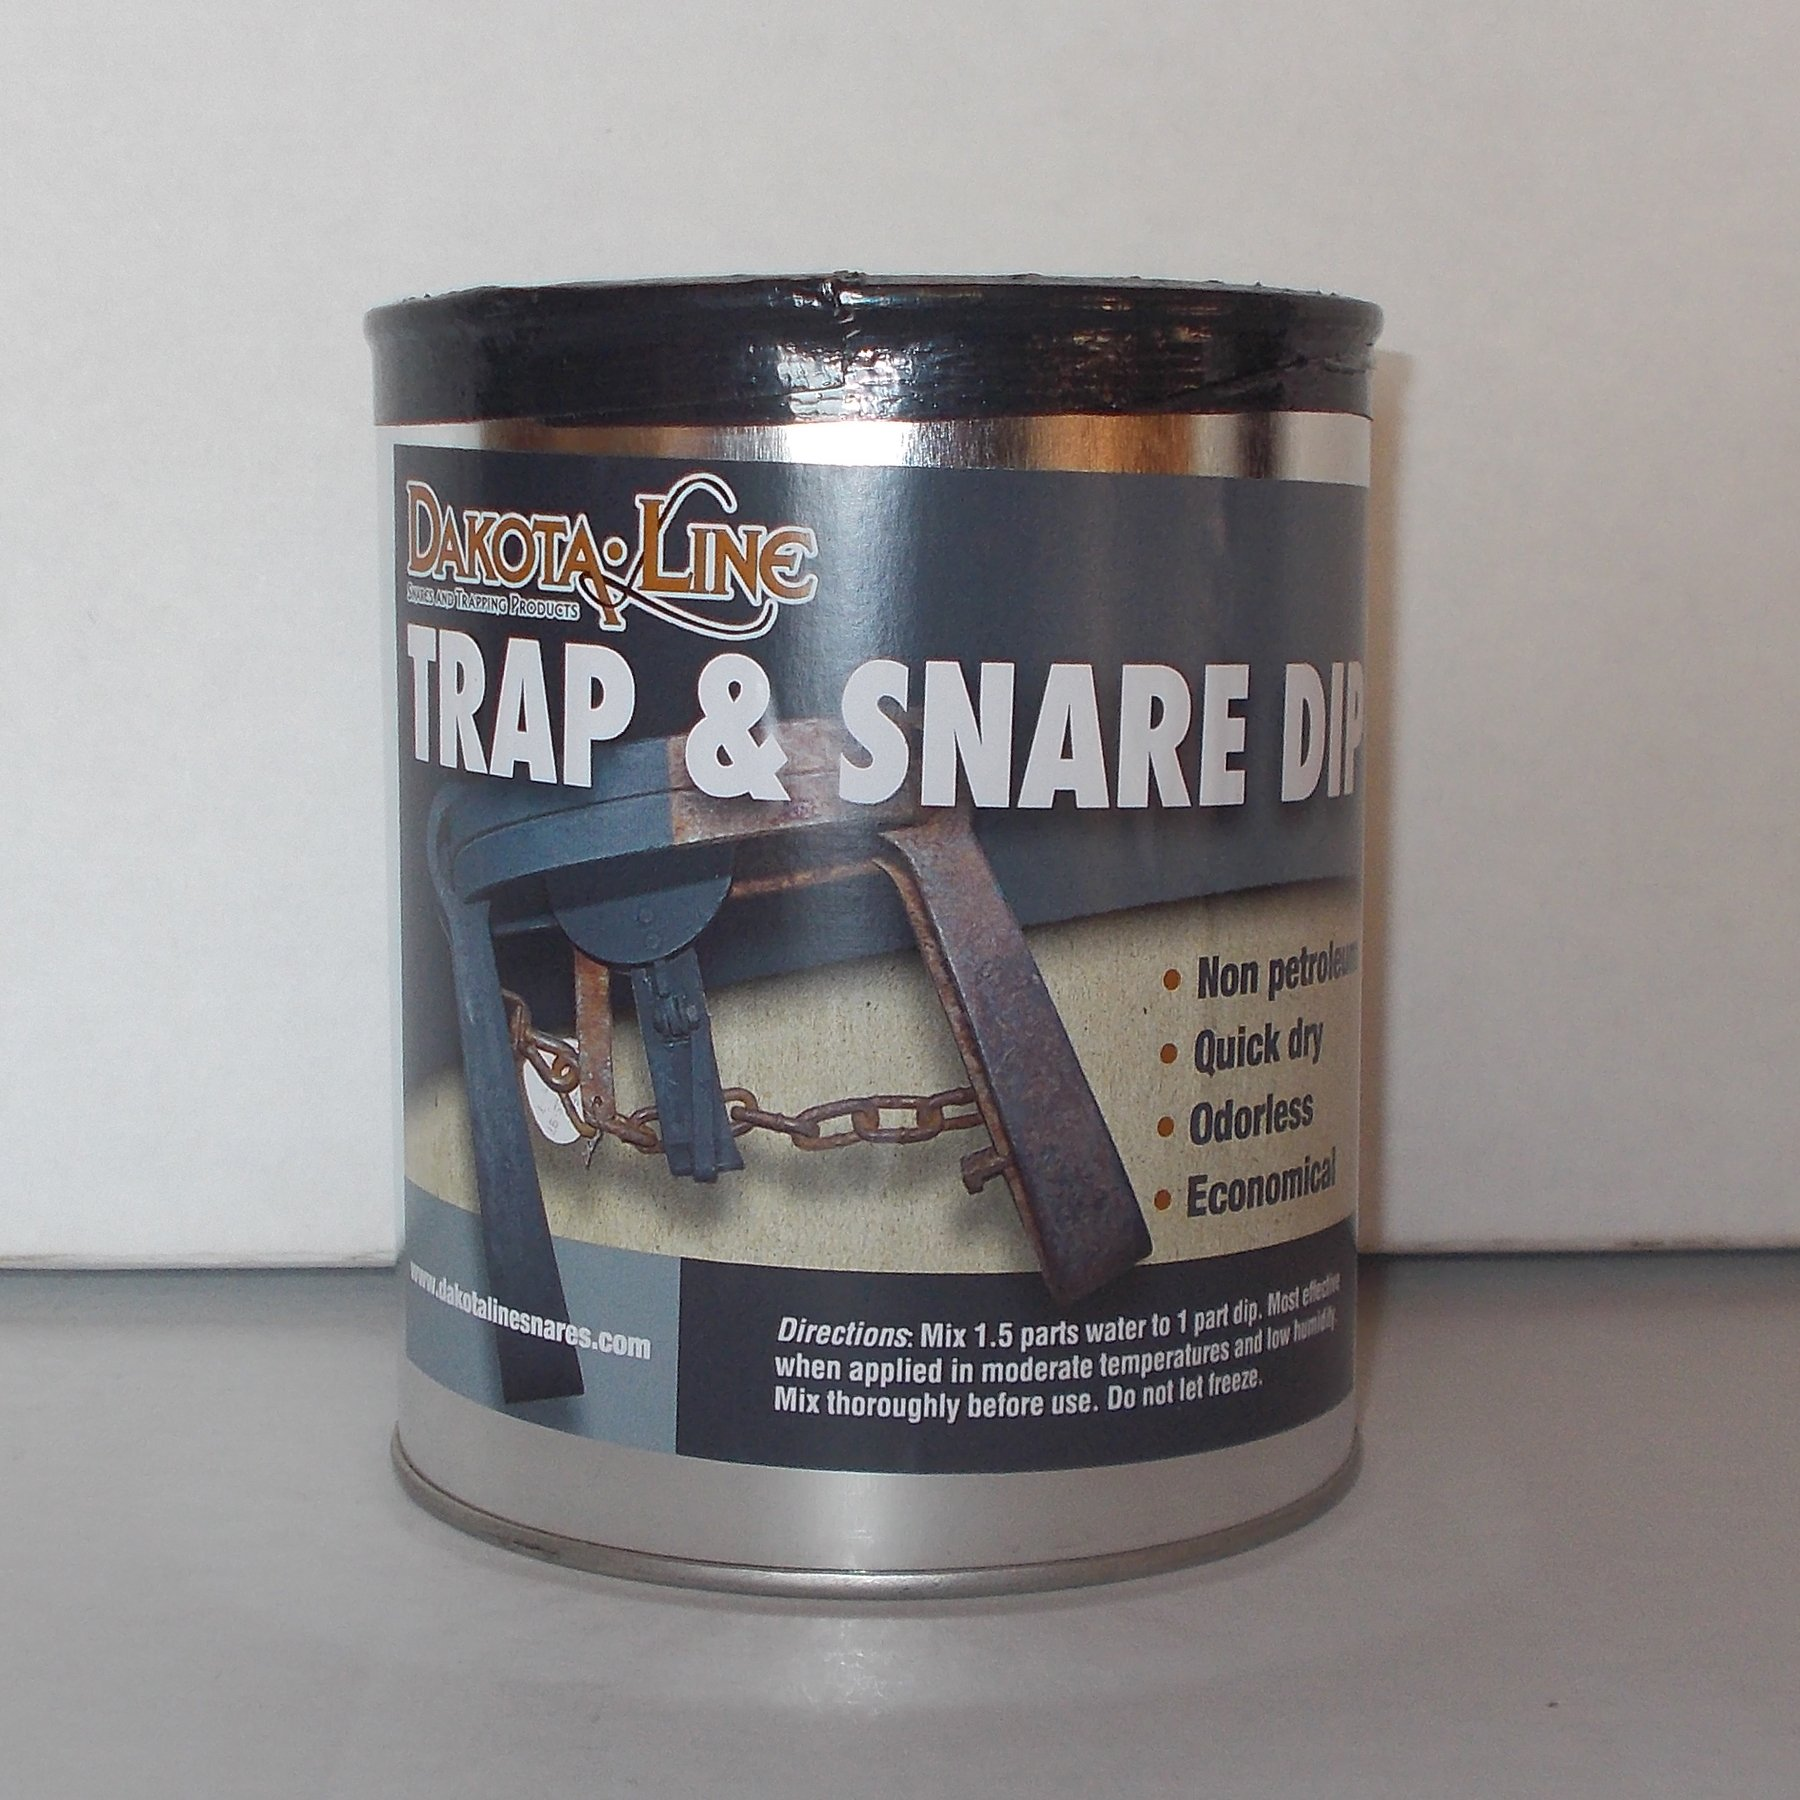 1 Quart Dakotaline DESERT TAN Trap & Snare Dip by DakotaLine